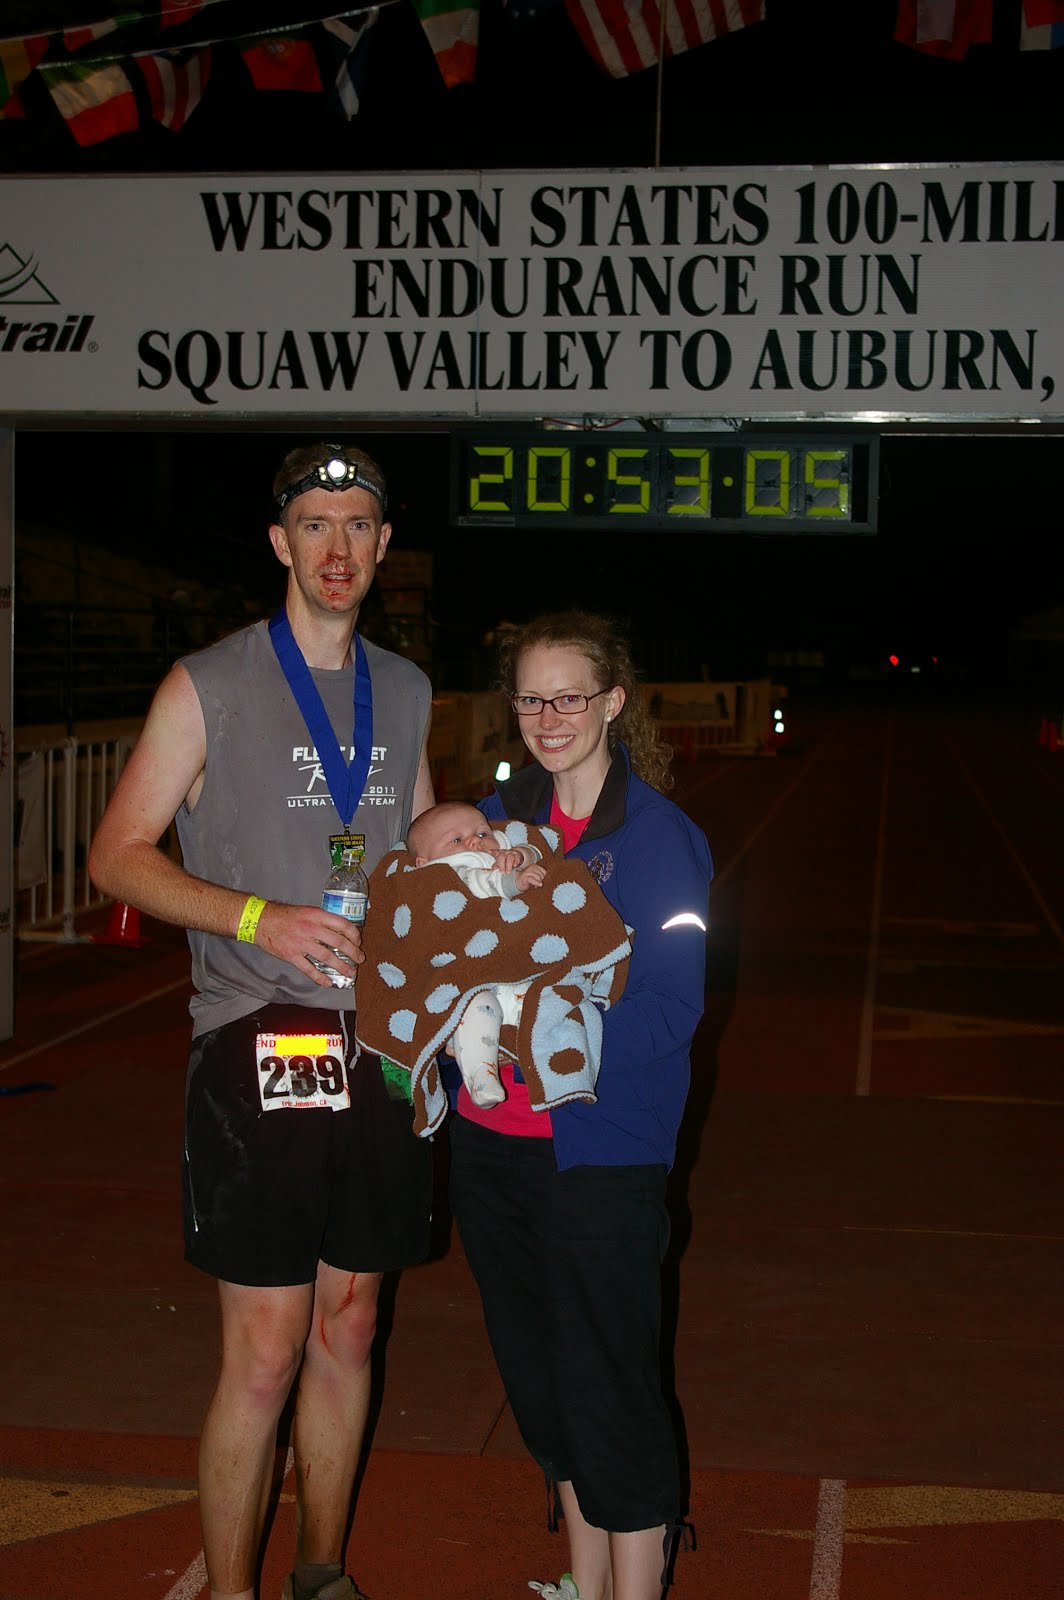 WS100 2011 PHOTO ALBUM